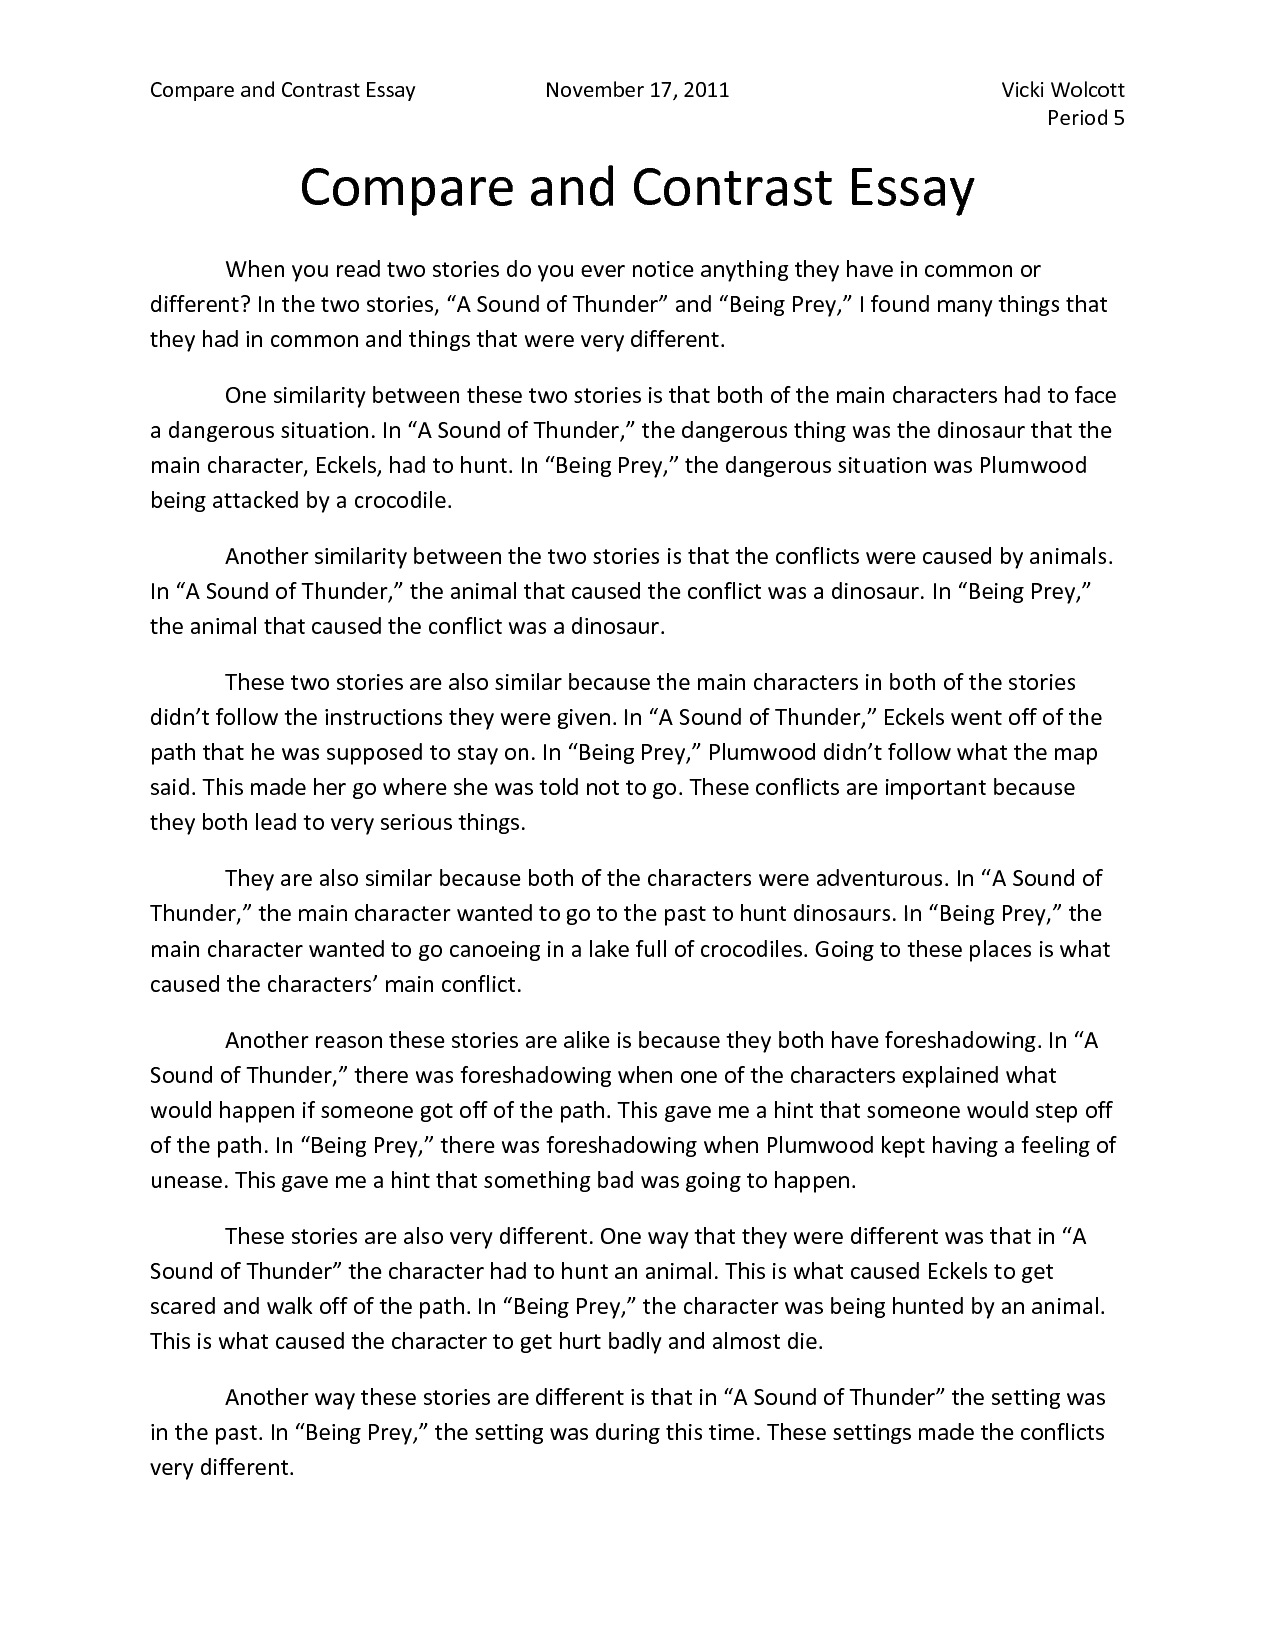 How to start a comparing and contrasting essay